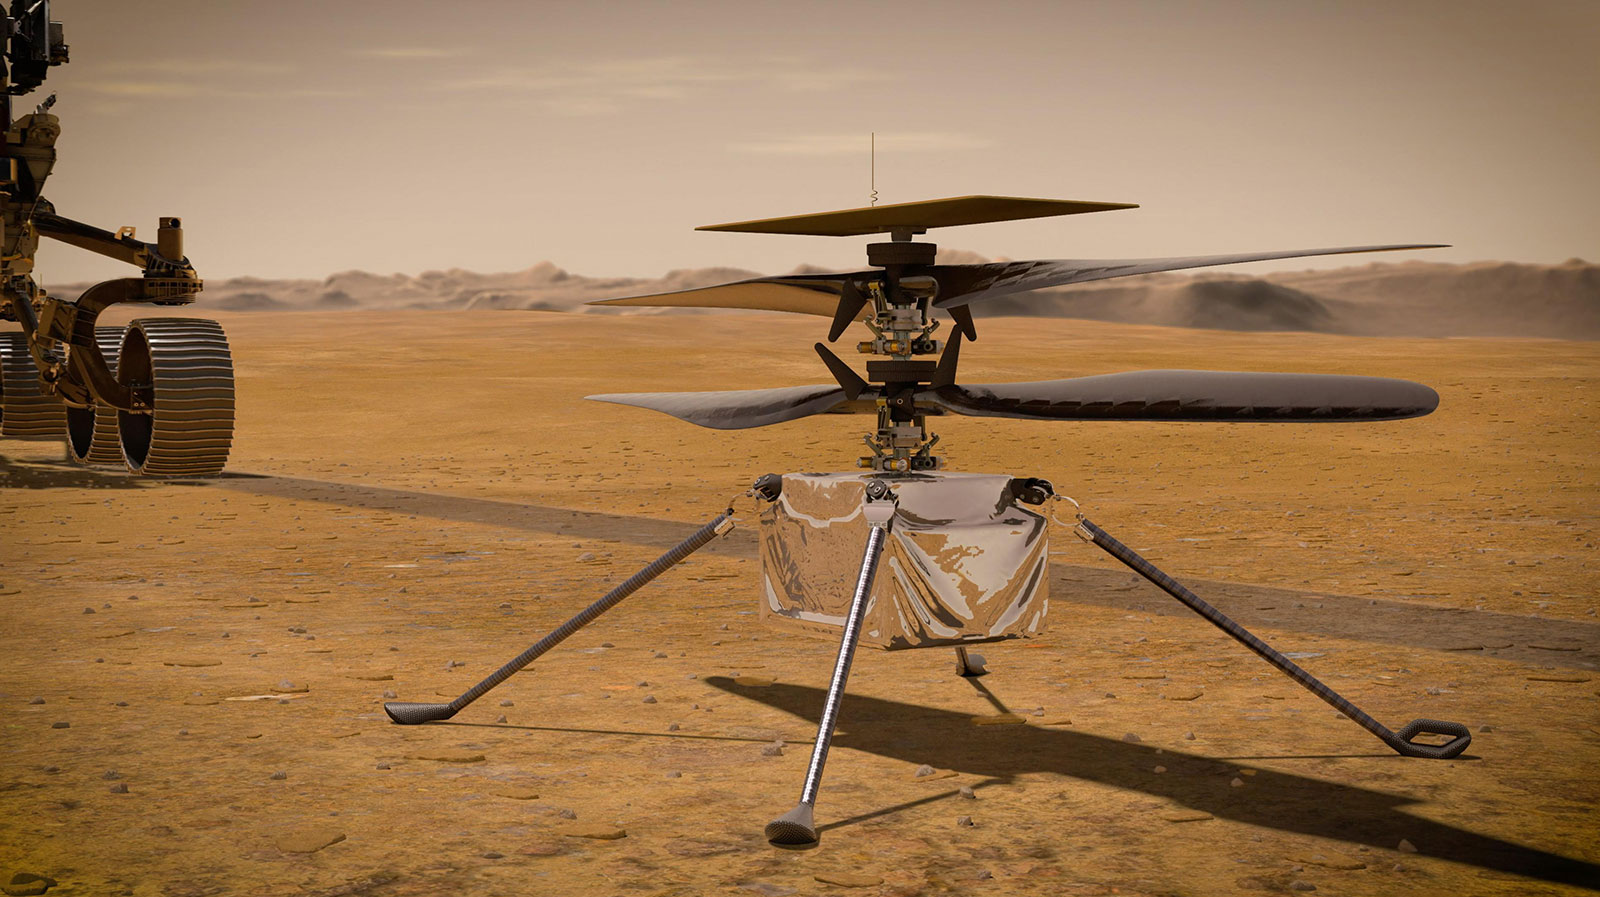 The Ingenuity Mars helicopter has a small box-like body topped by two sets of oblong blades. Four stick-like legs extend from the body of the helicopter.